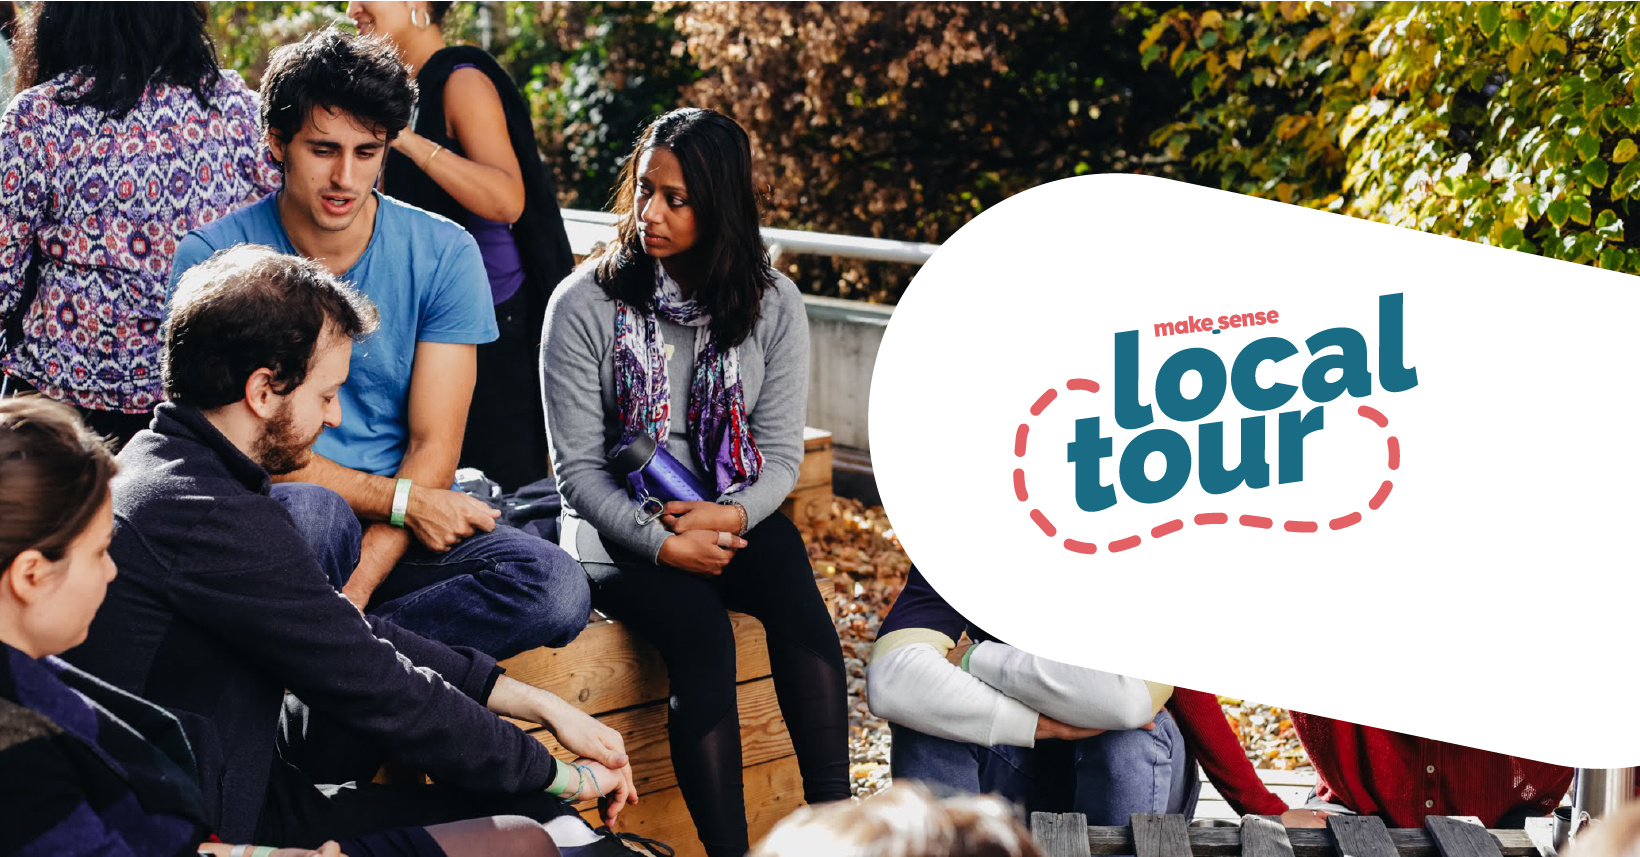 Image of the event : How to organize a local tour?